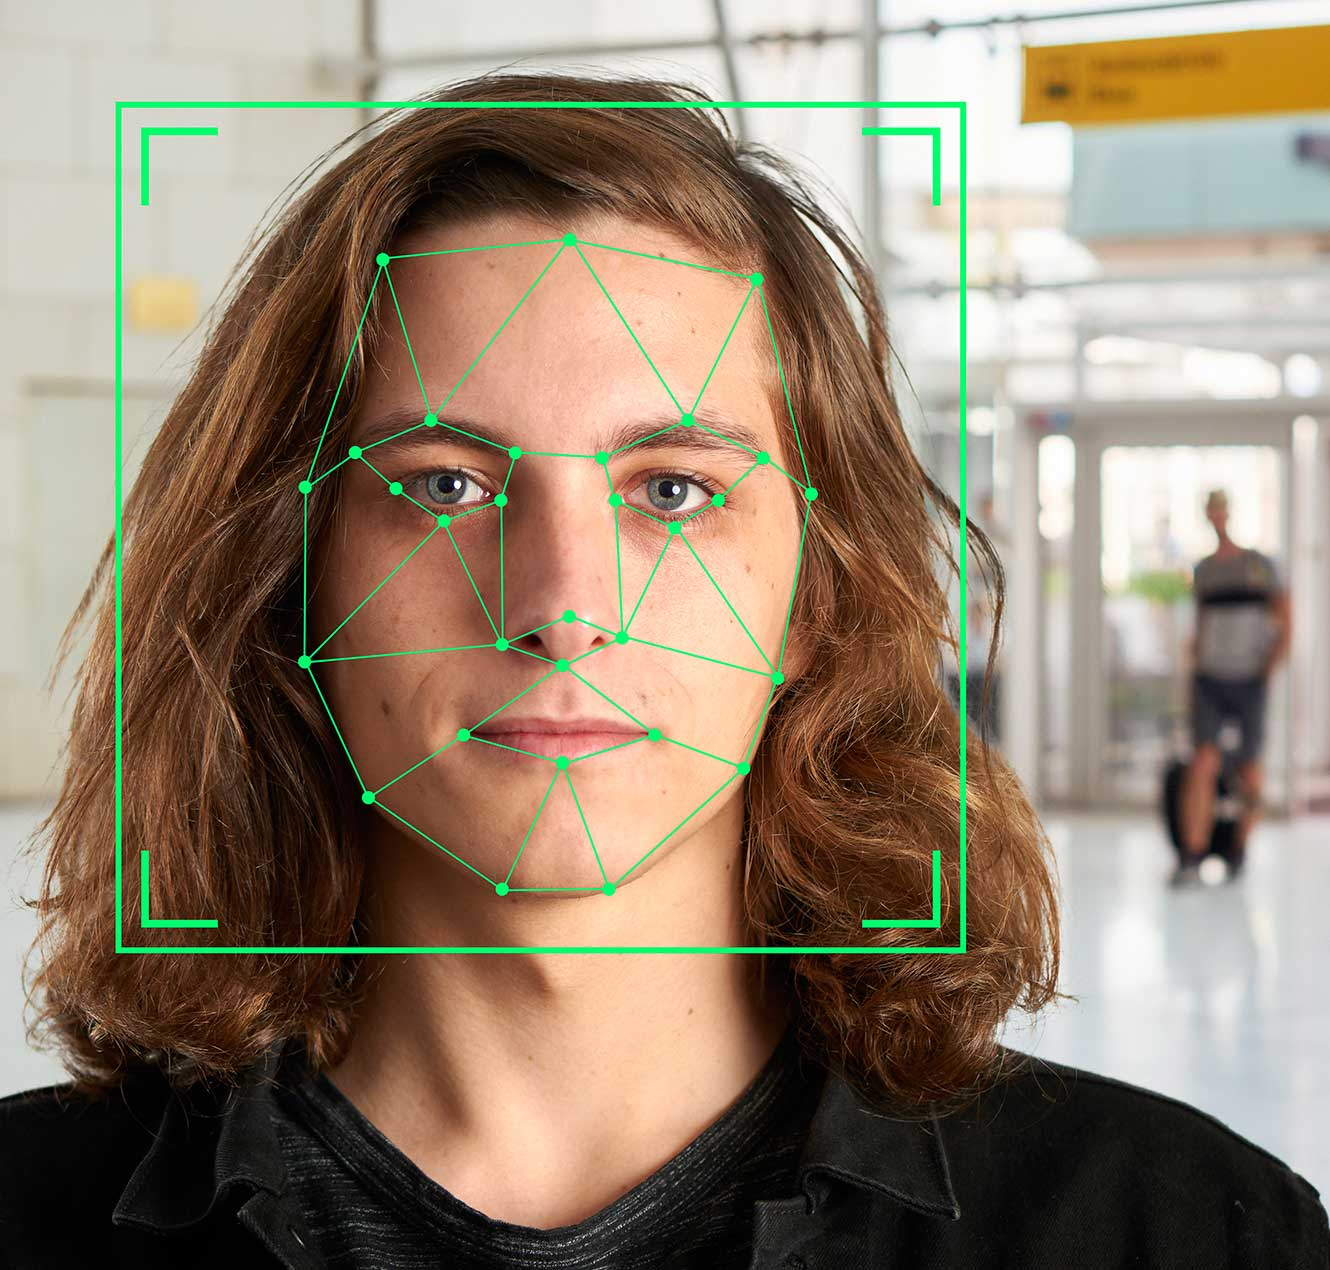 Facial recognition-based attendance system